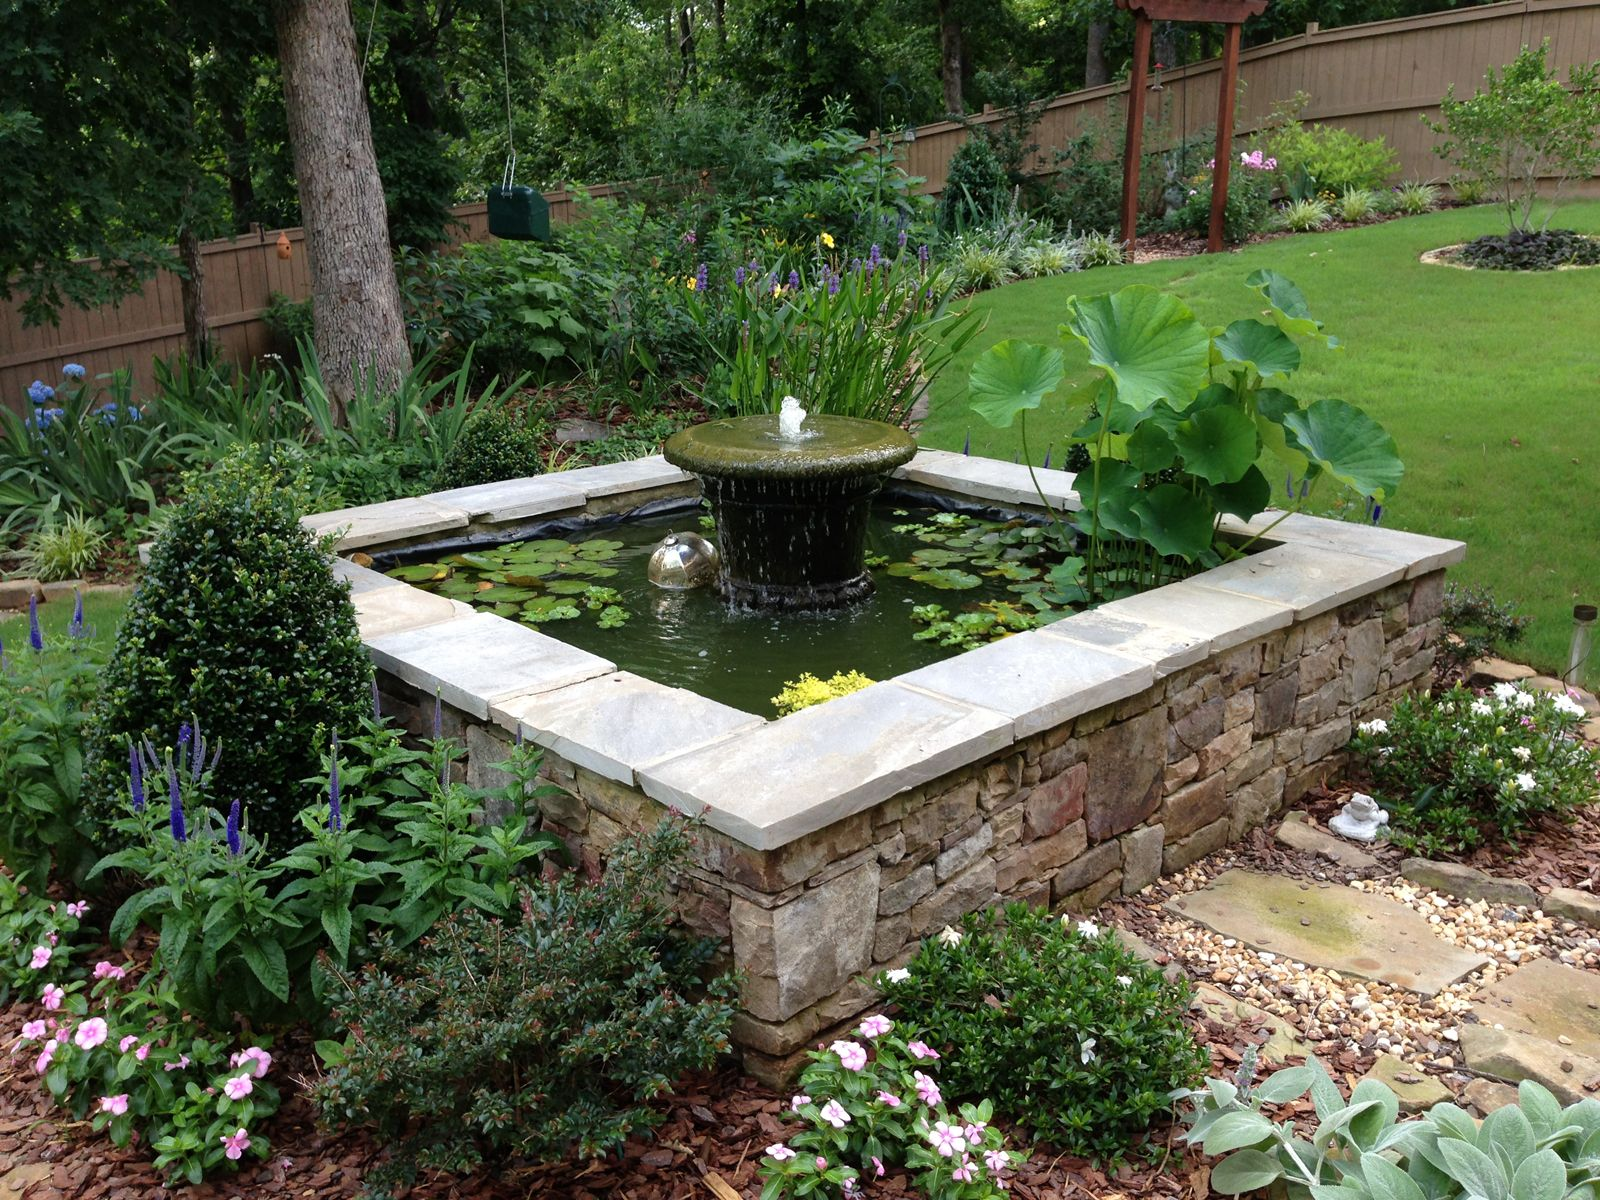 Square water pool carol bill 39 s garden in georgia for Above ground koi fish pond